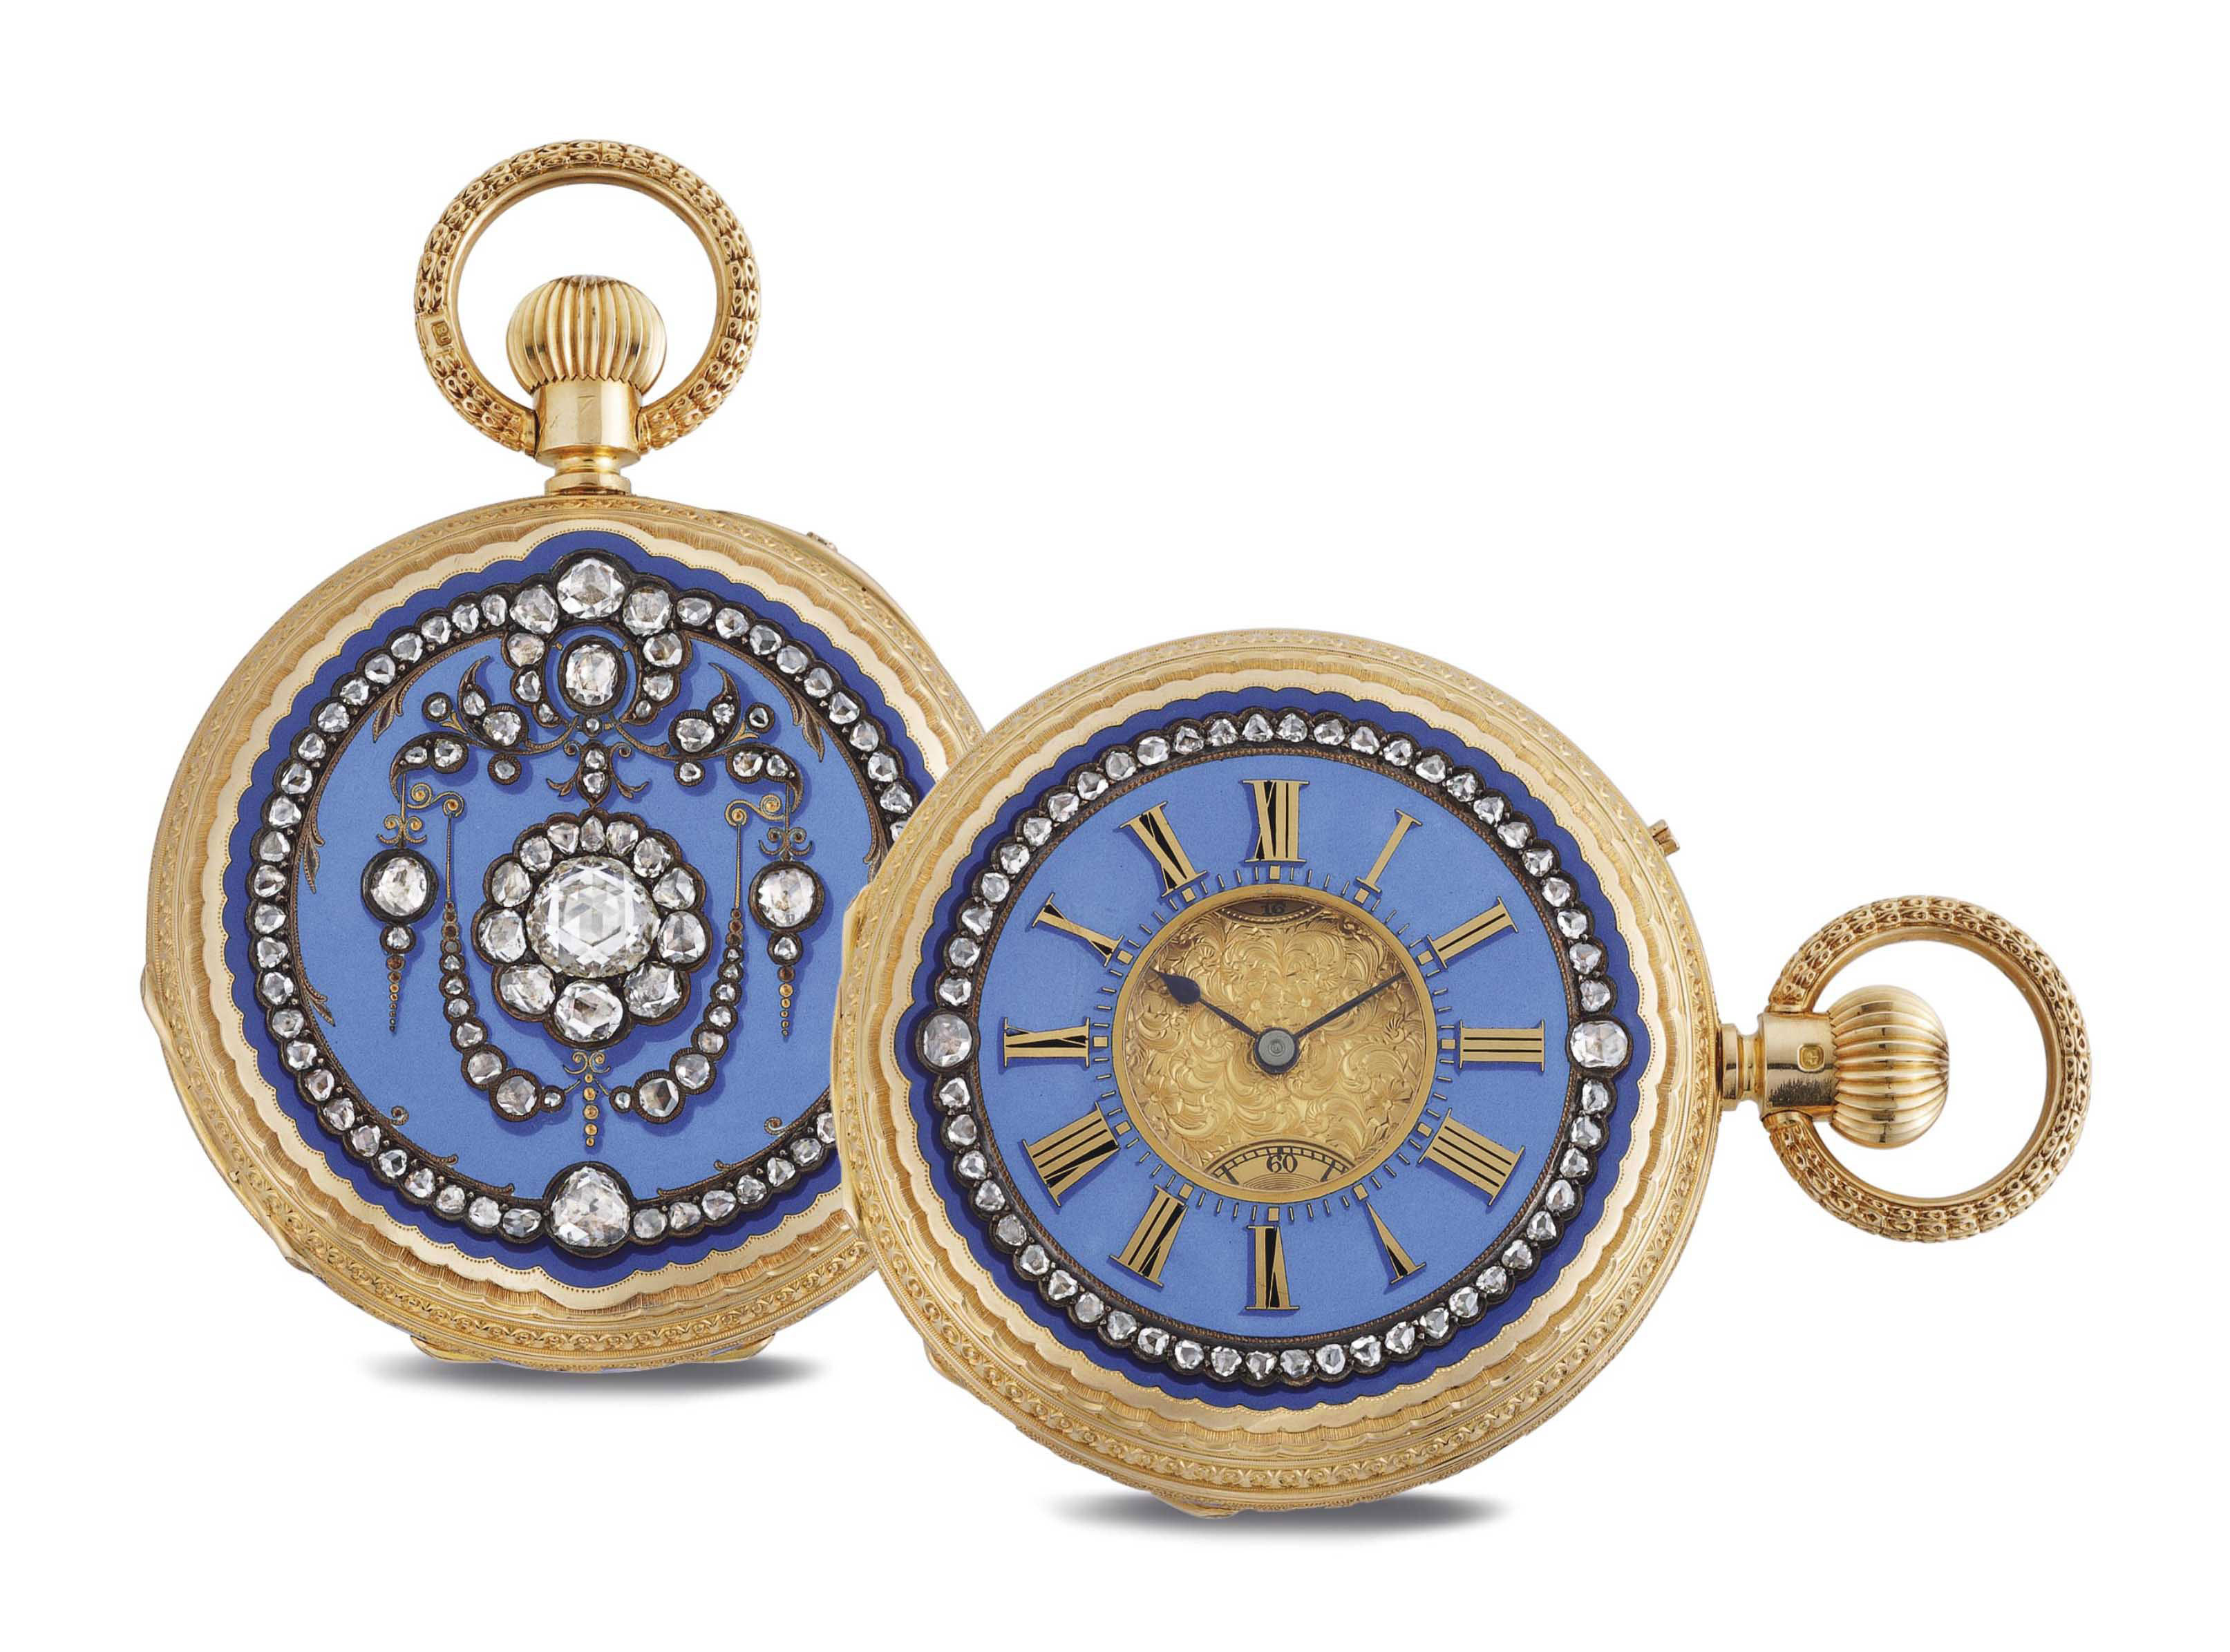 HAMILTON & CO. A FINE 18K GOLD, ENAMEL AND PASTE-SET KEY WOUND POCKET WATCH WITH UP AND DOWN, MADE FOR THE INDIAN MARKET